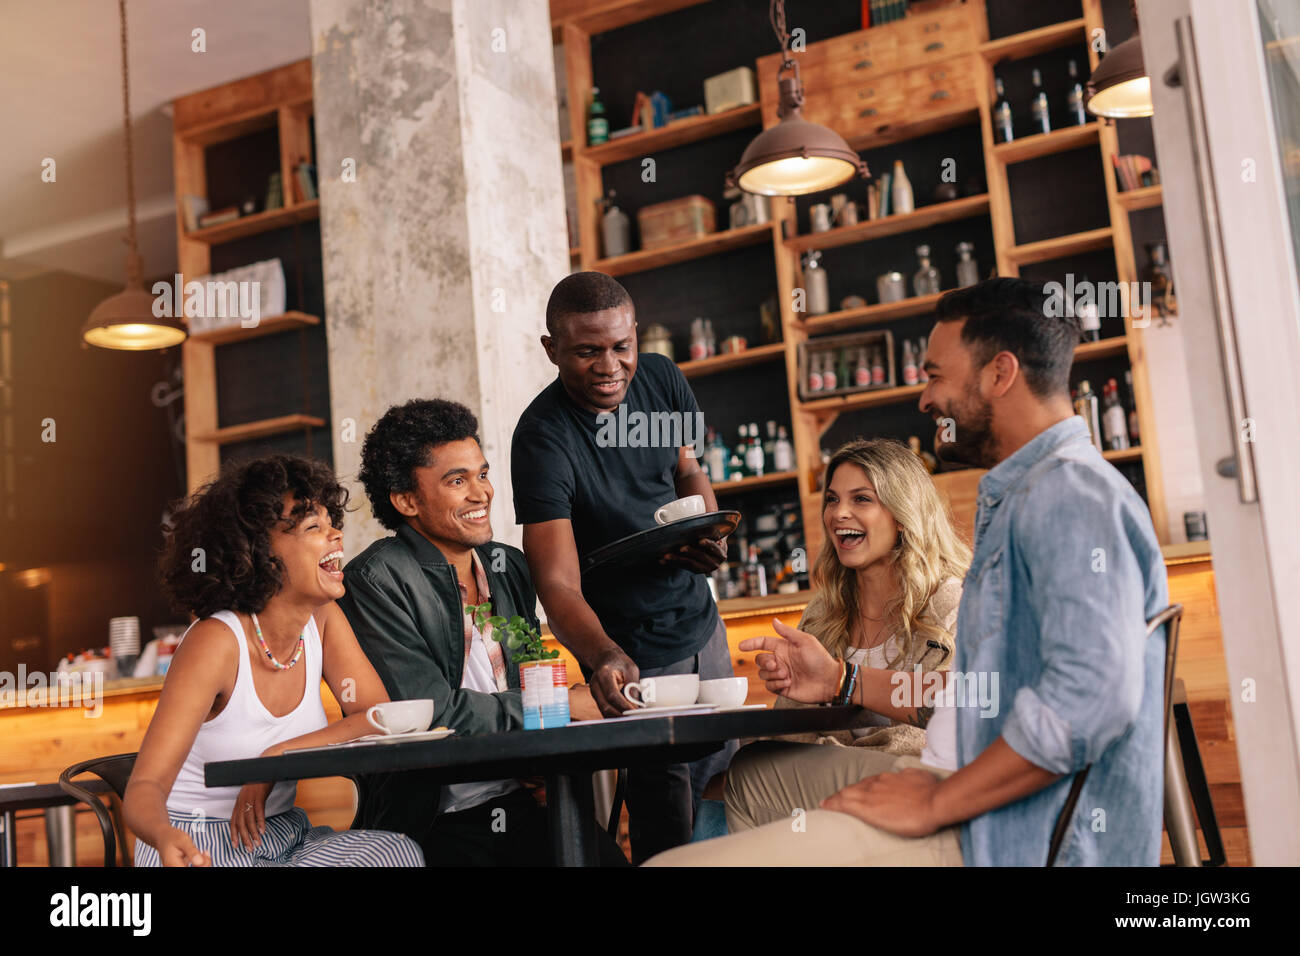 Group of friends sitting around table and waiter serving coffee at cafe. Young people meeting at coffee shop. - Stock Image